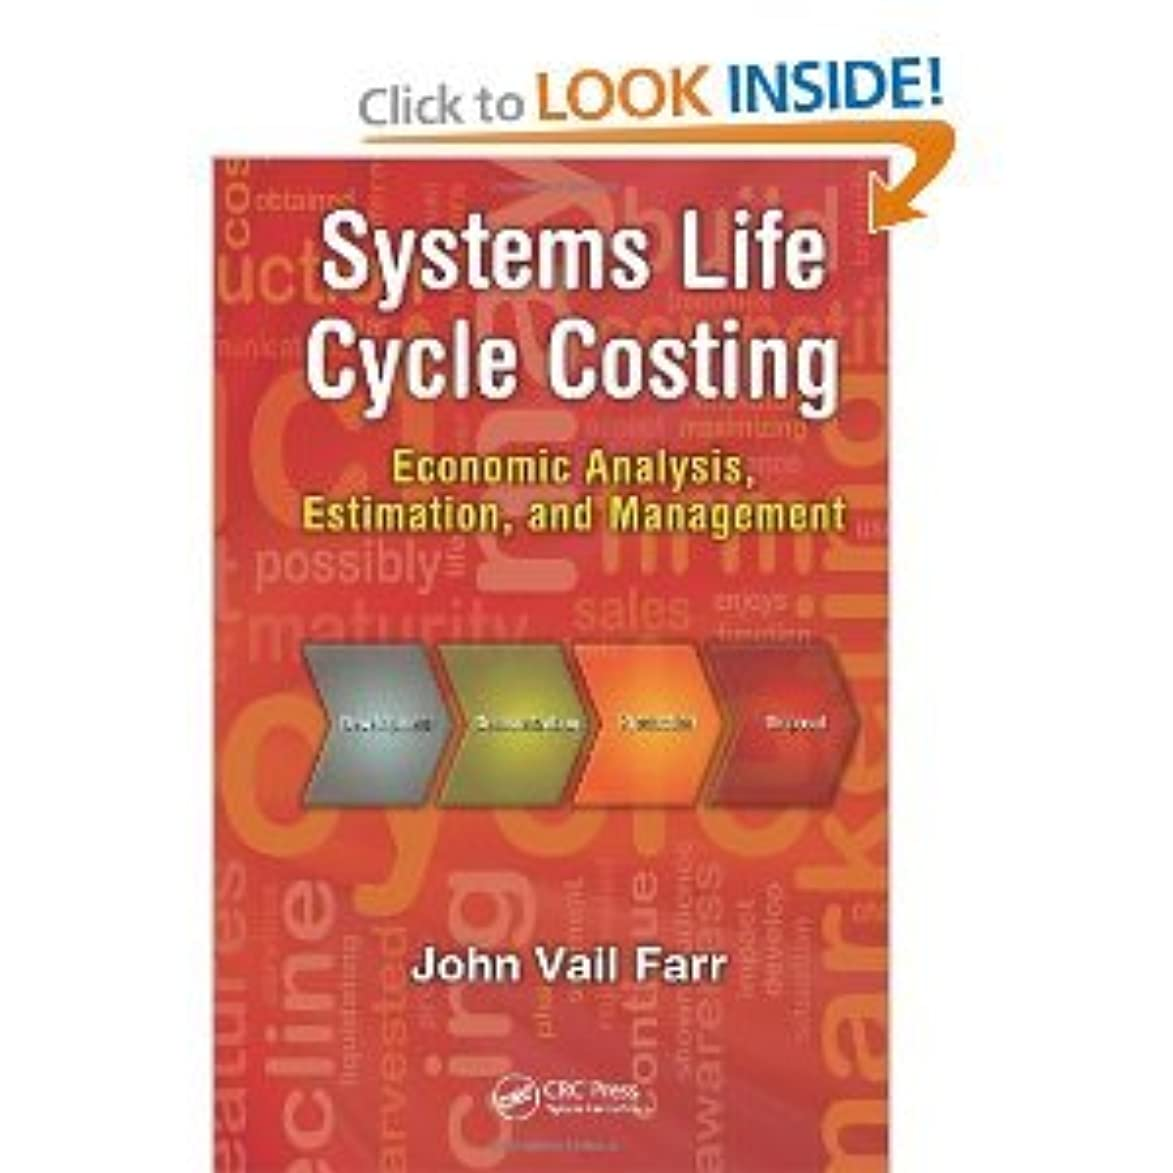 Systems Life Cycle Costing byFarr dalkd010785